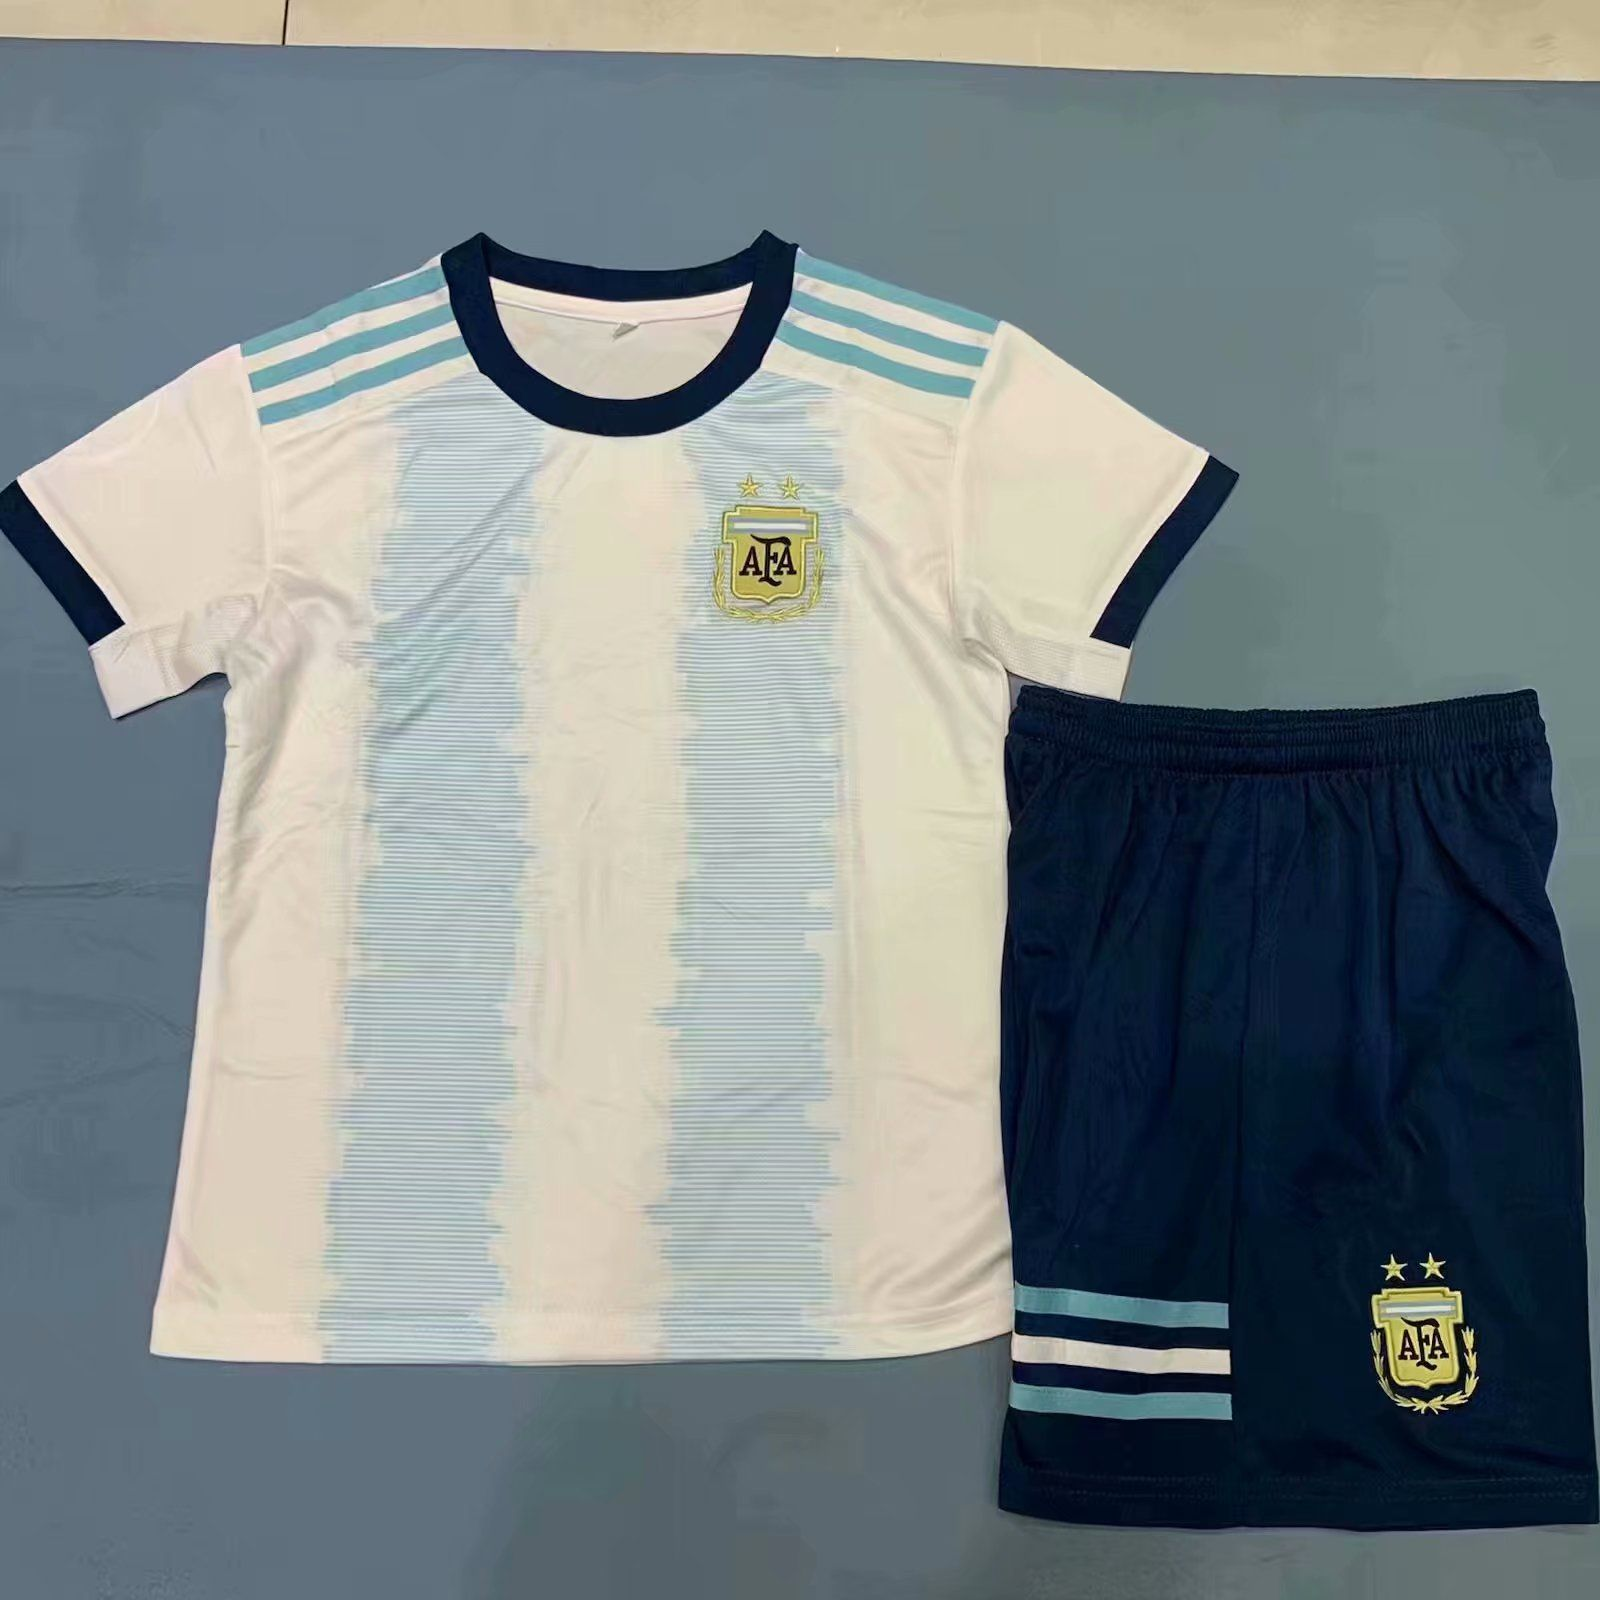 201920 kids argentina copa home soccer jersey uniforms in